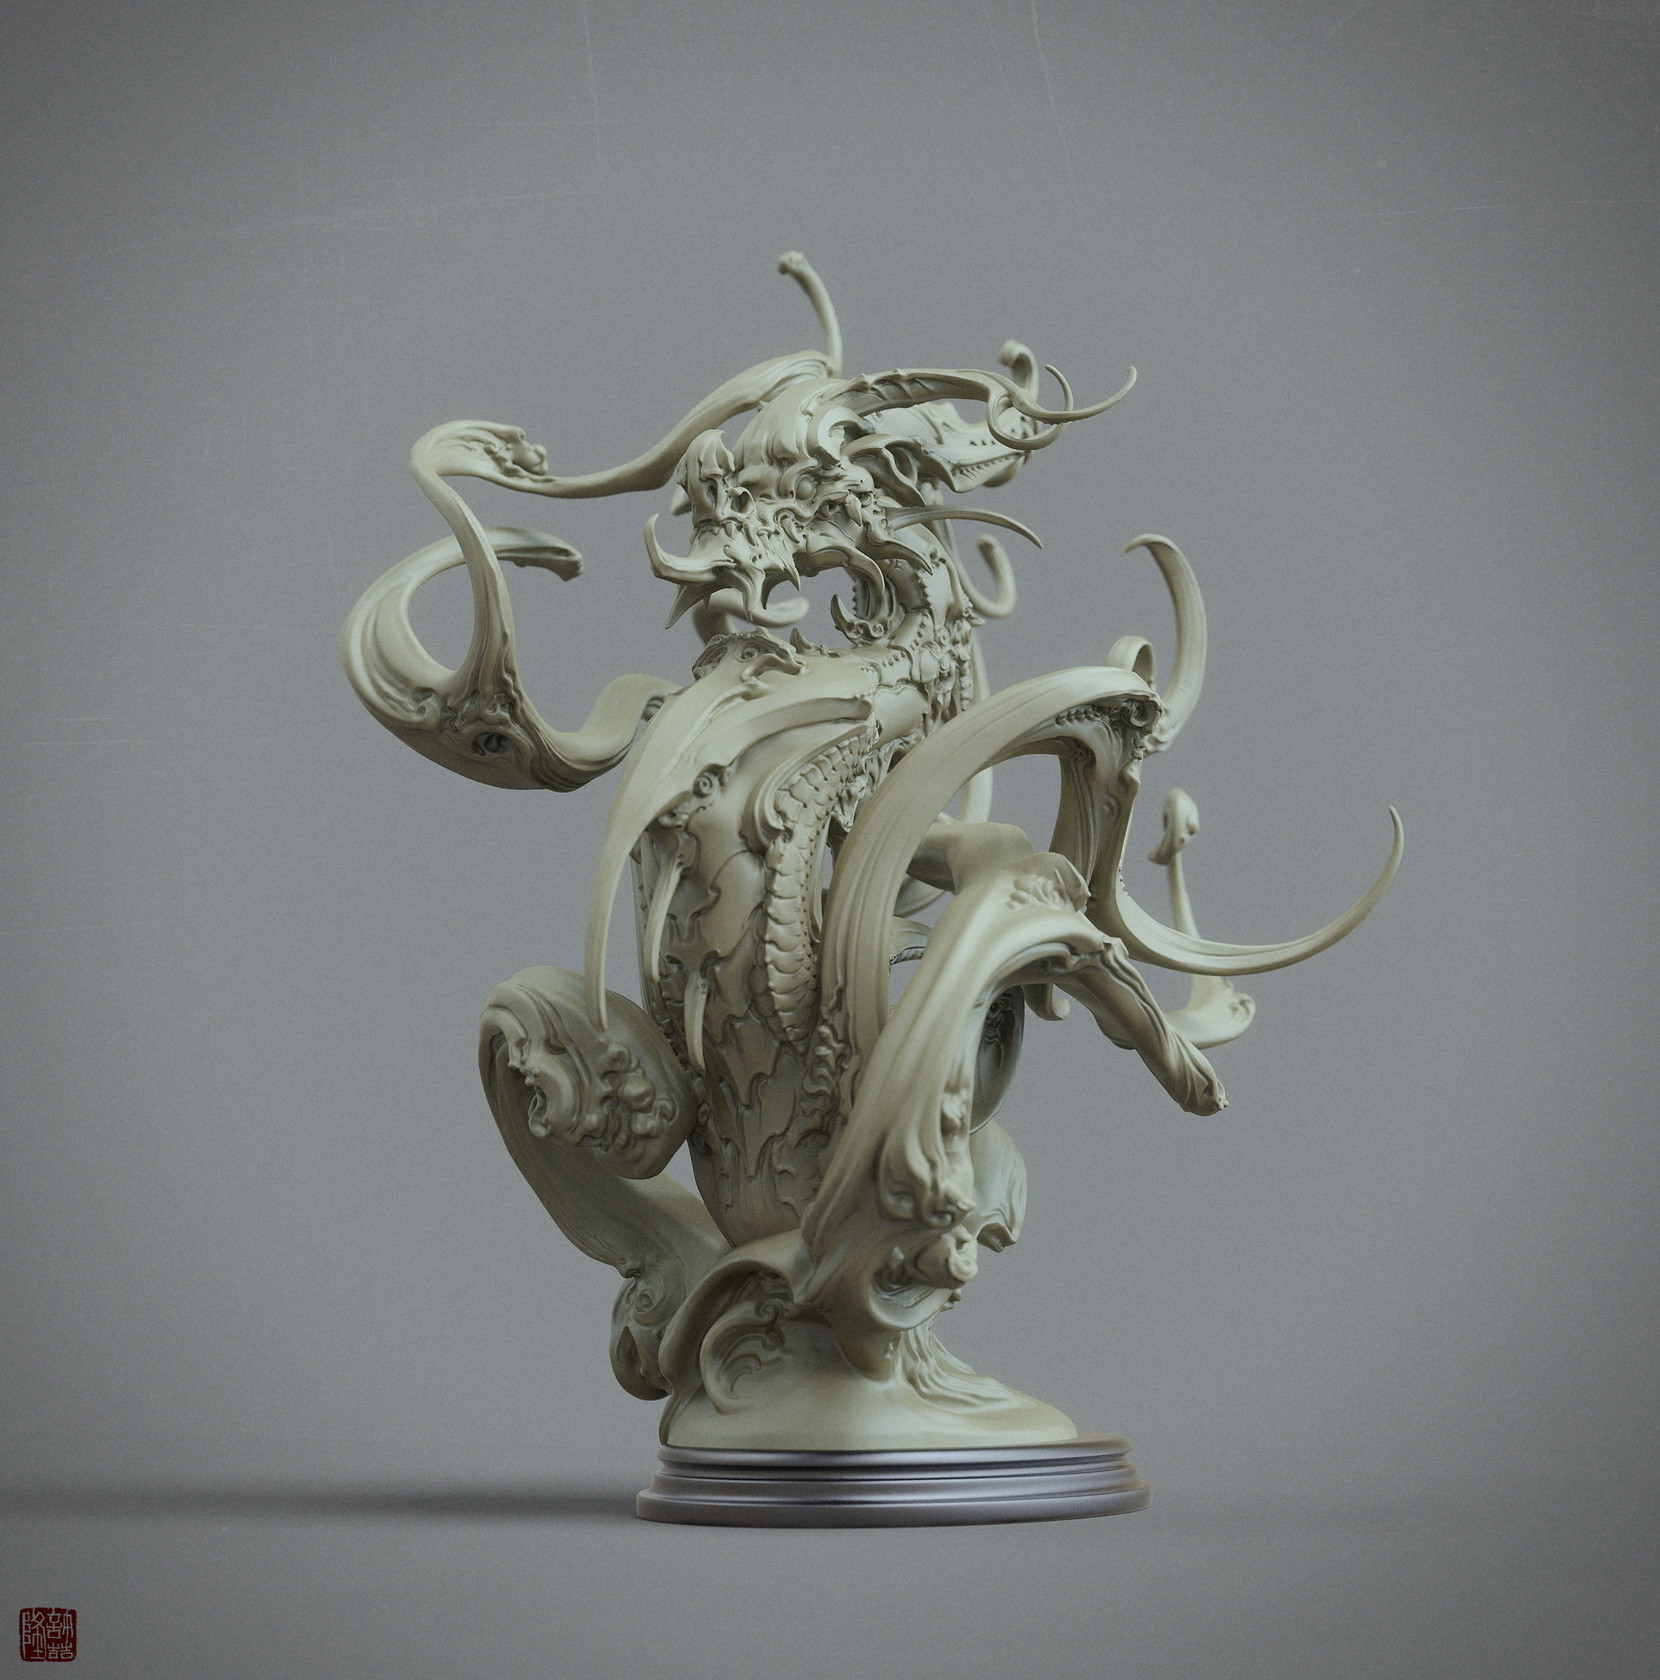 Zhelong xu keyshot render04 websize